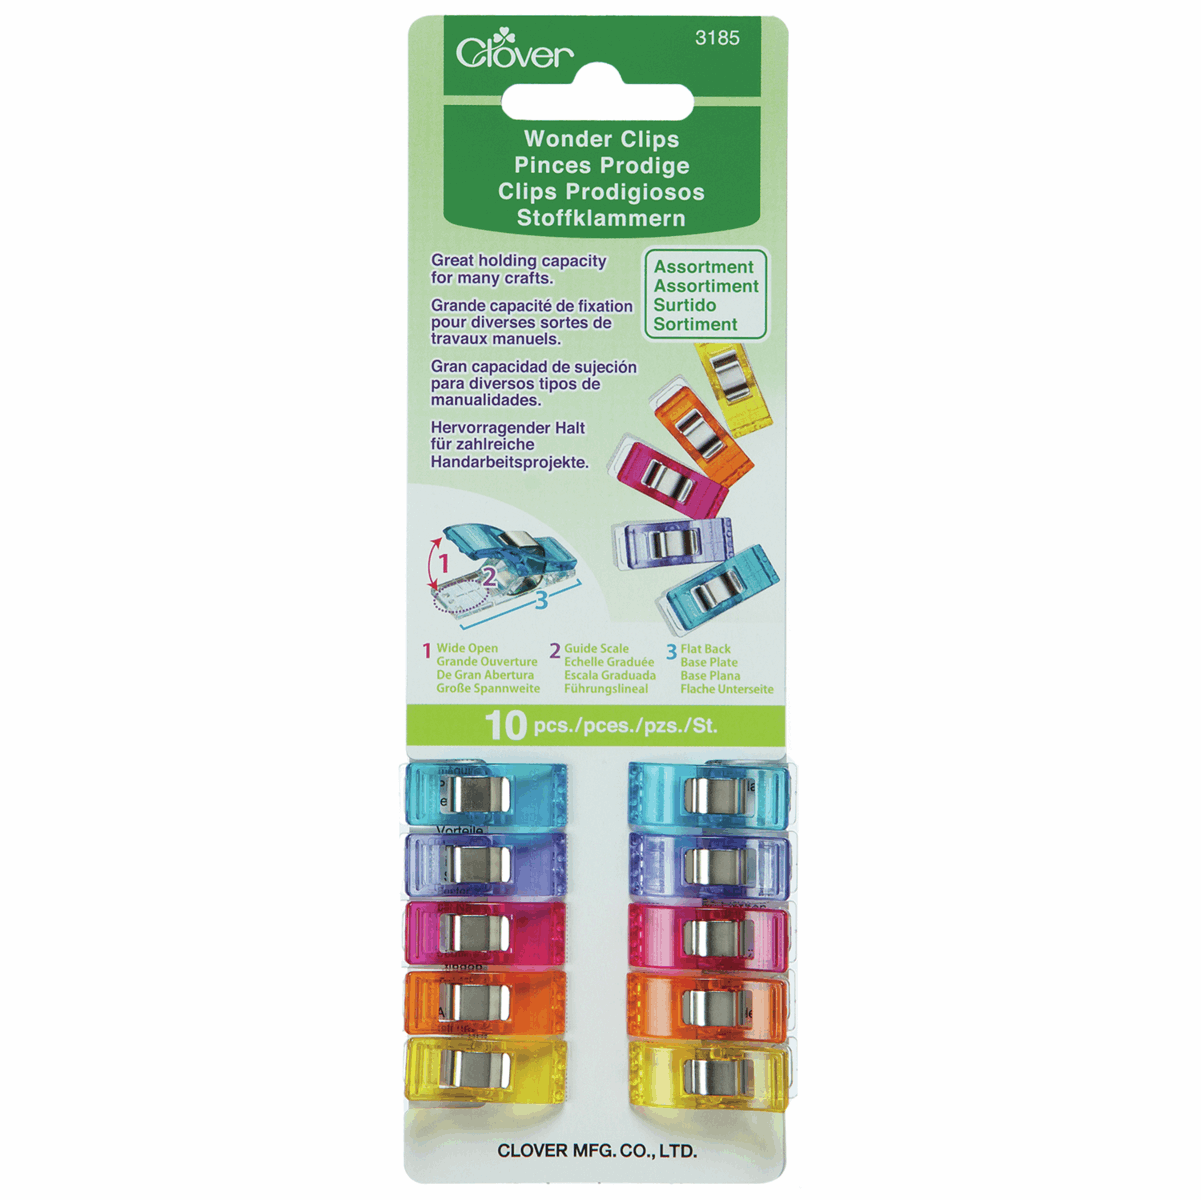 Clover Wonder Clips, Pack of 10